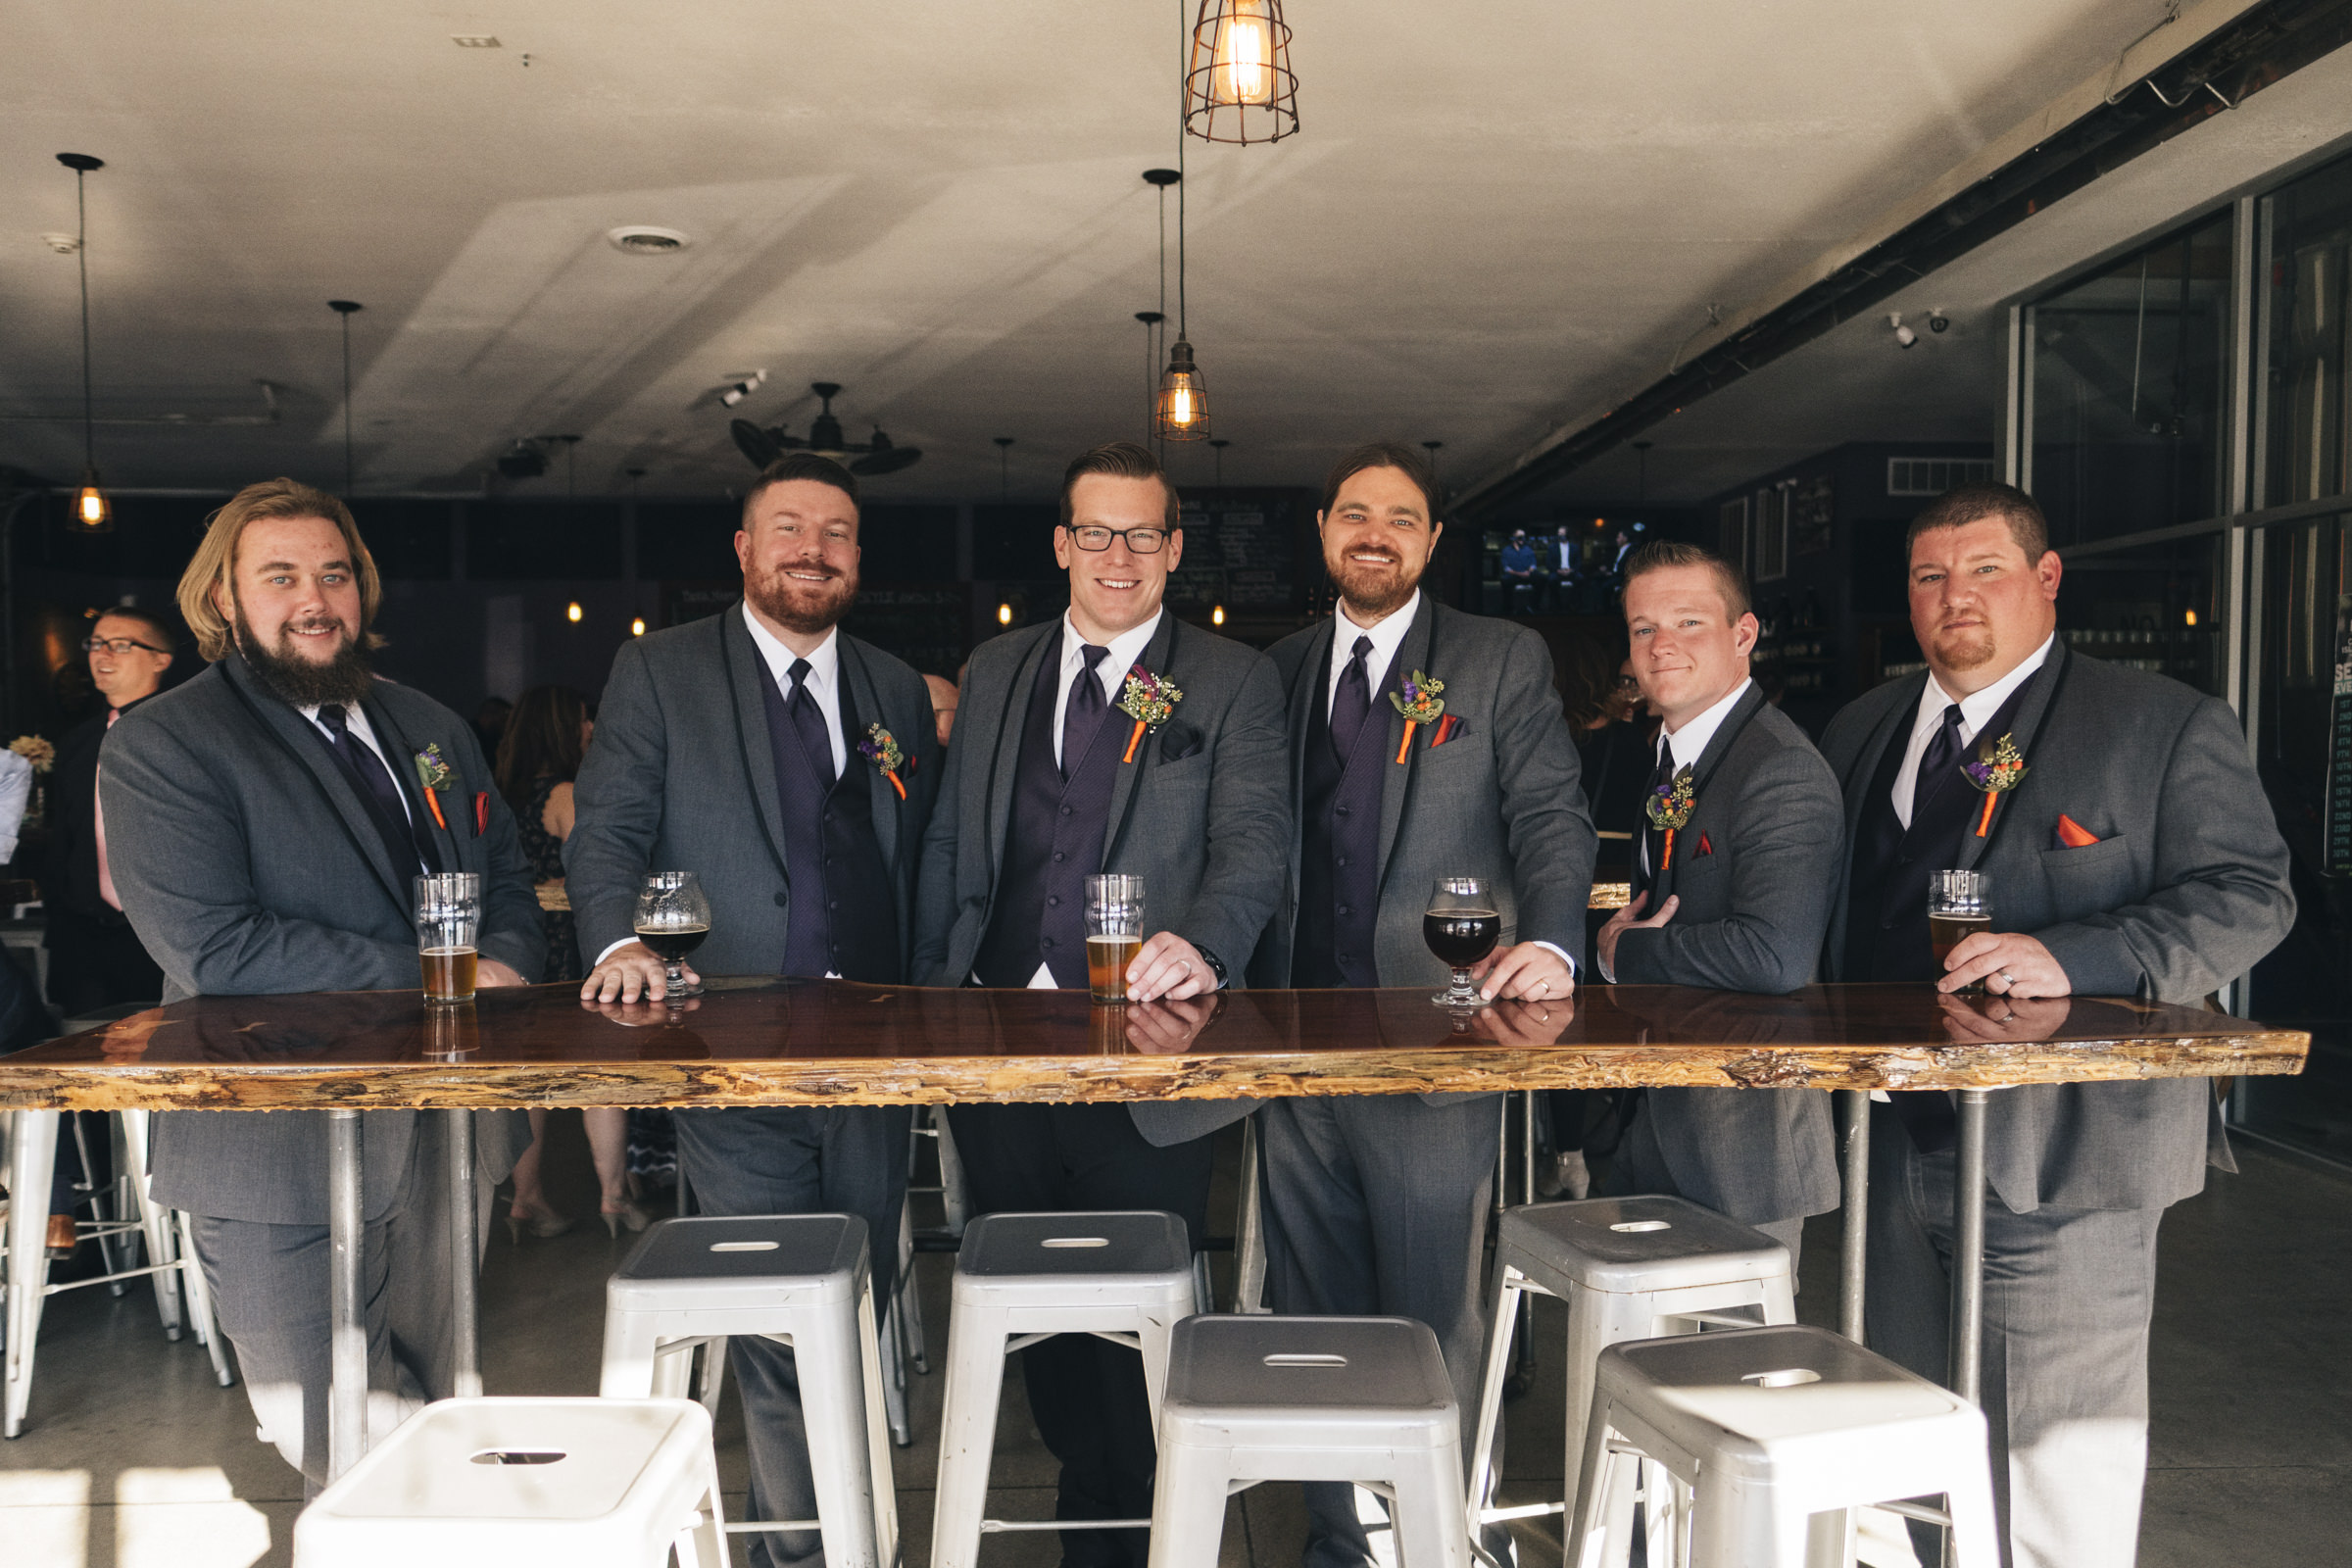 Groomsmen stand for a picture at a brewery in Port Clinton Ohio